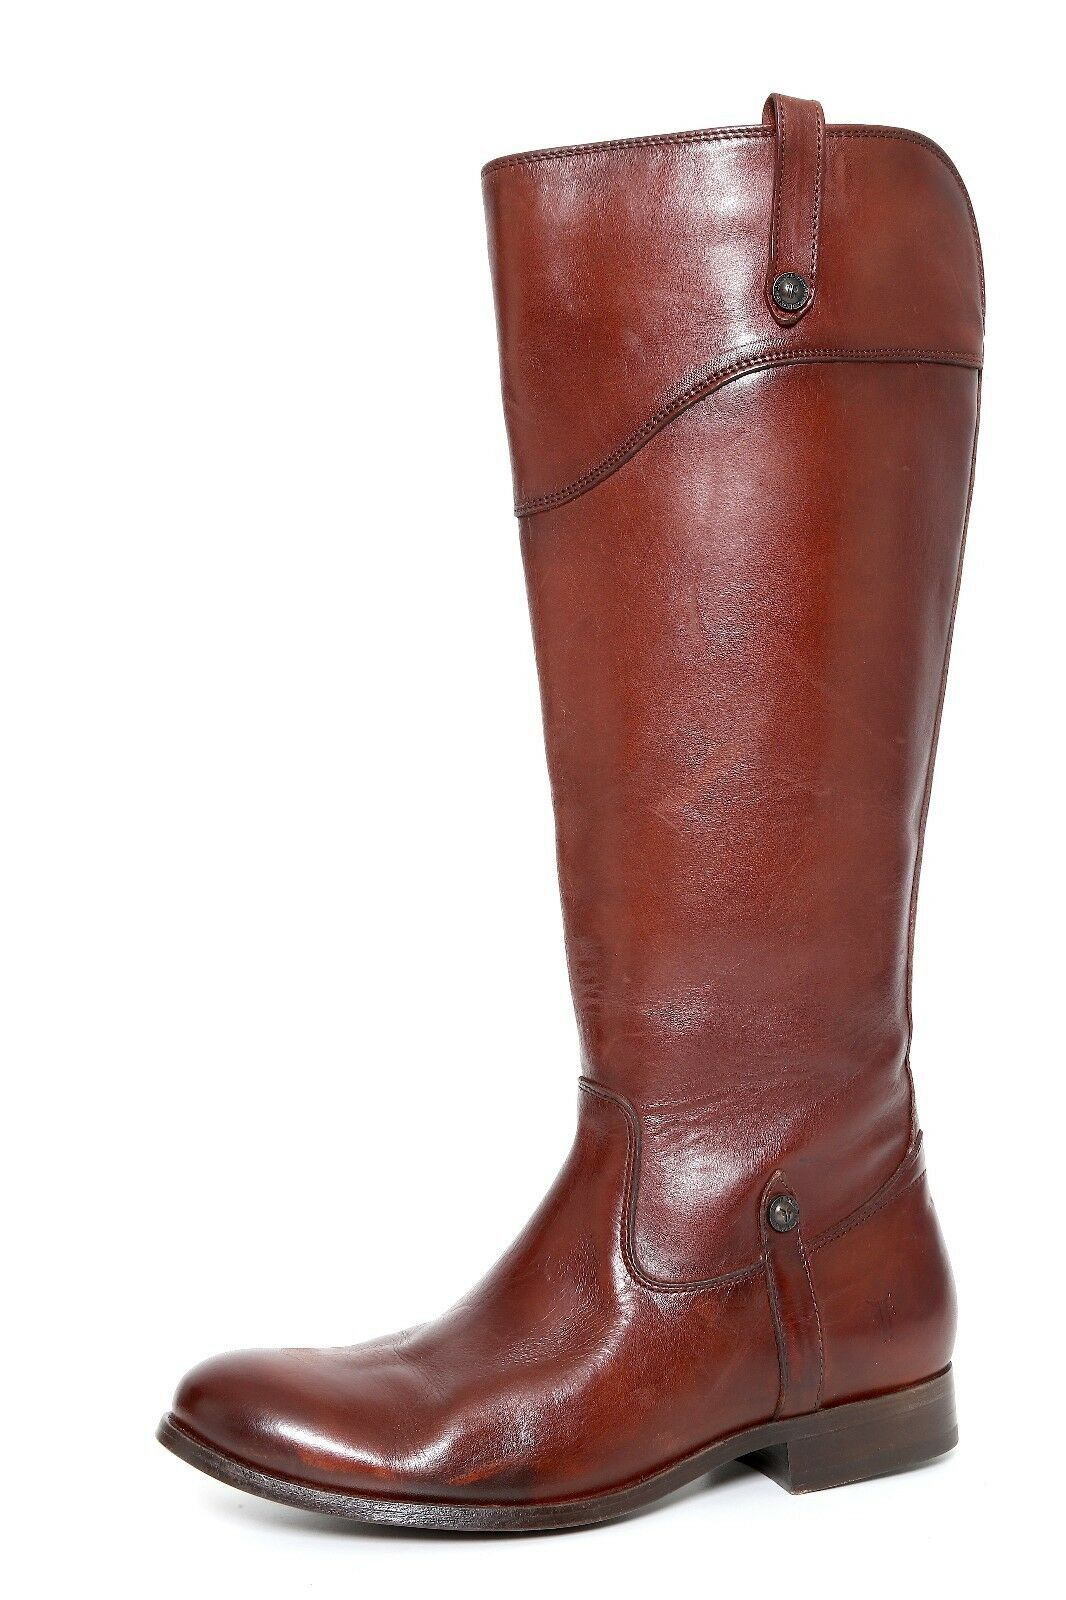 Frye Women's Knee High Leather Boot 4001 Size 9.5B